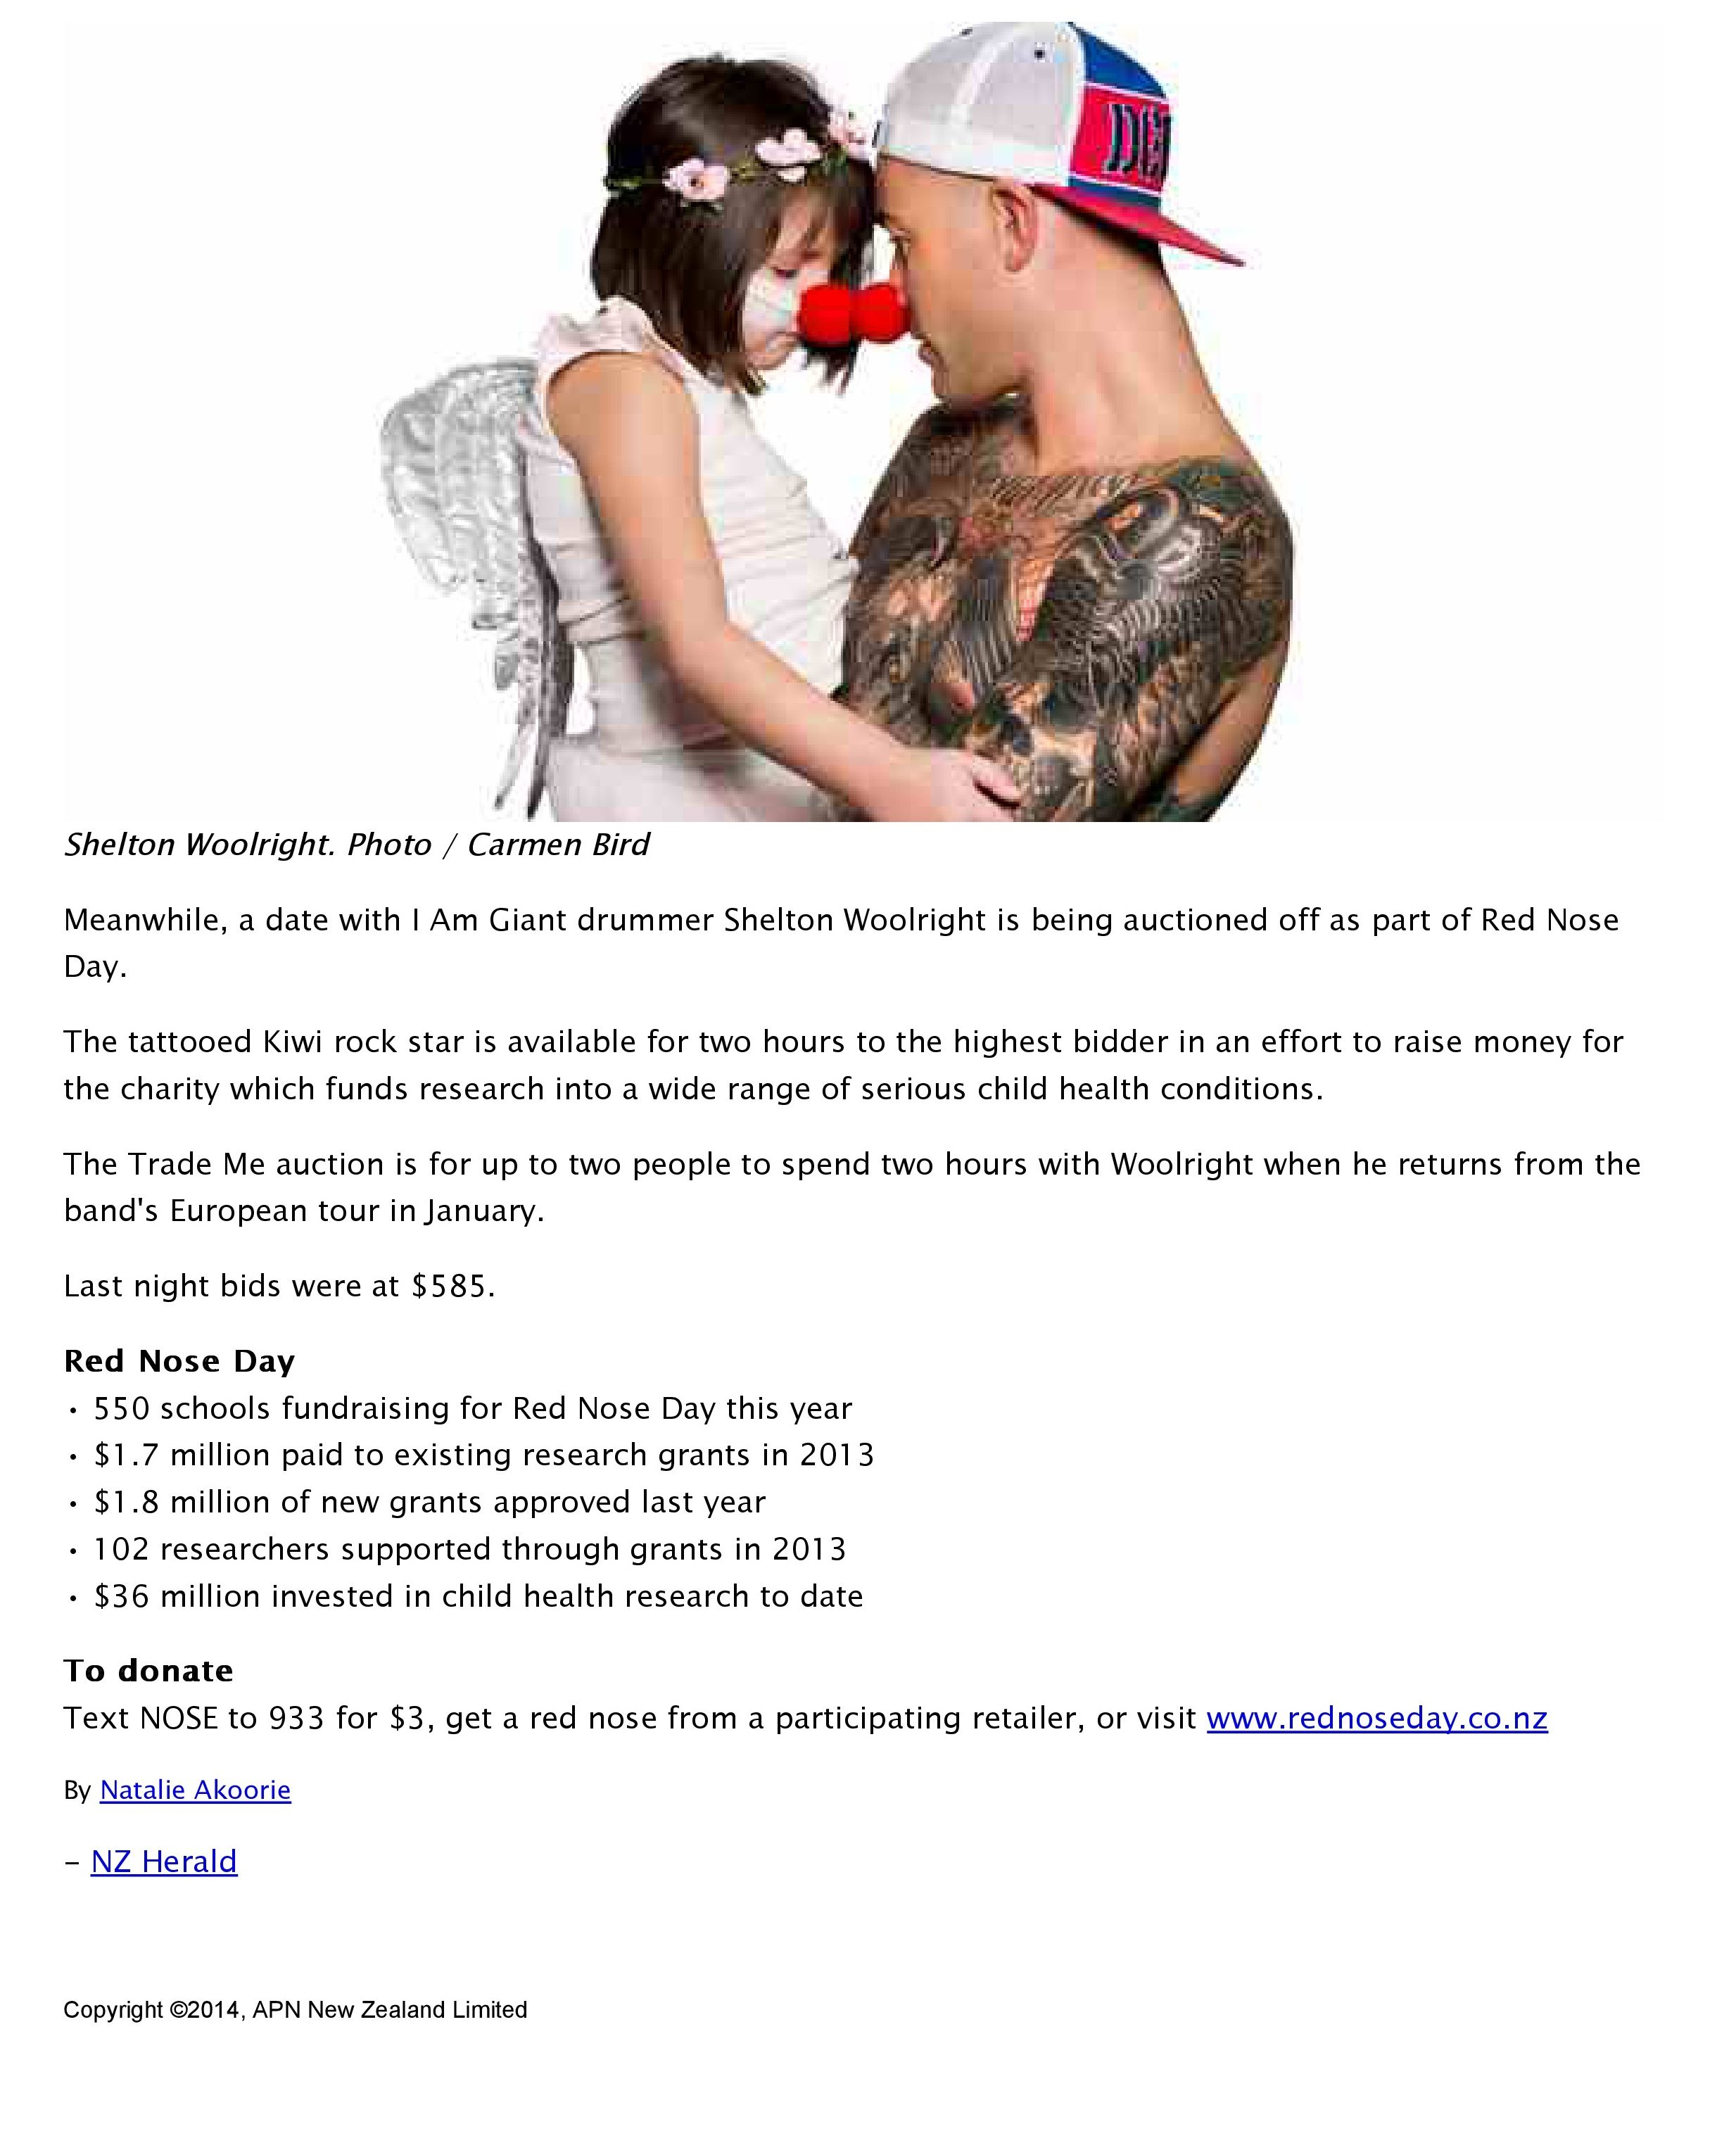 Be2 dating site nz herald